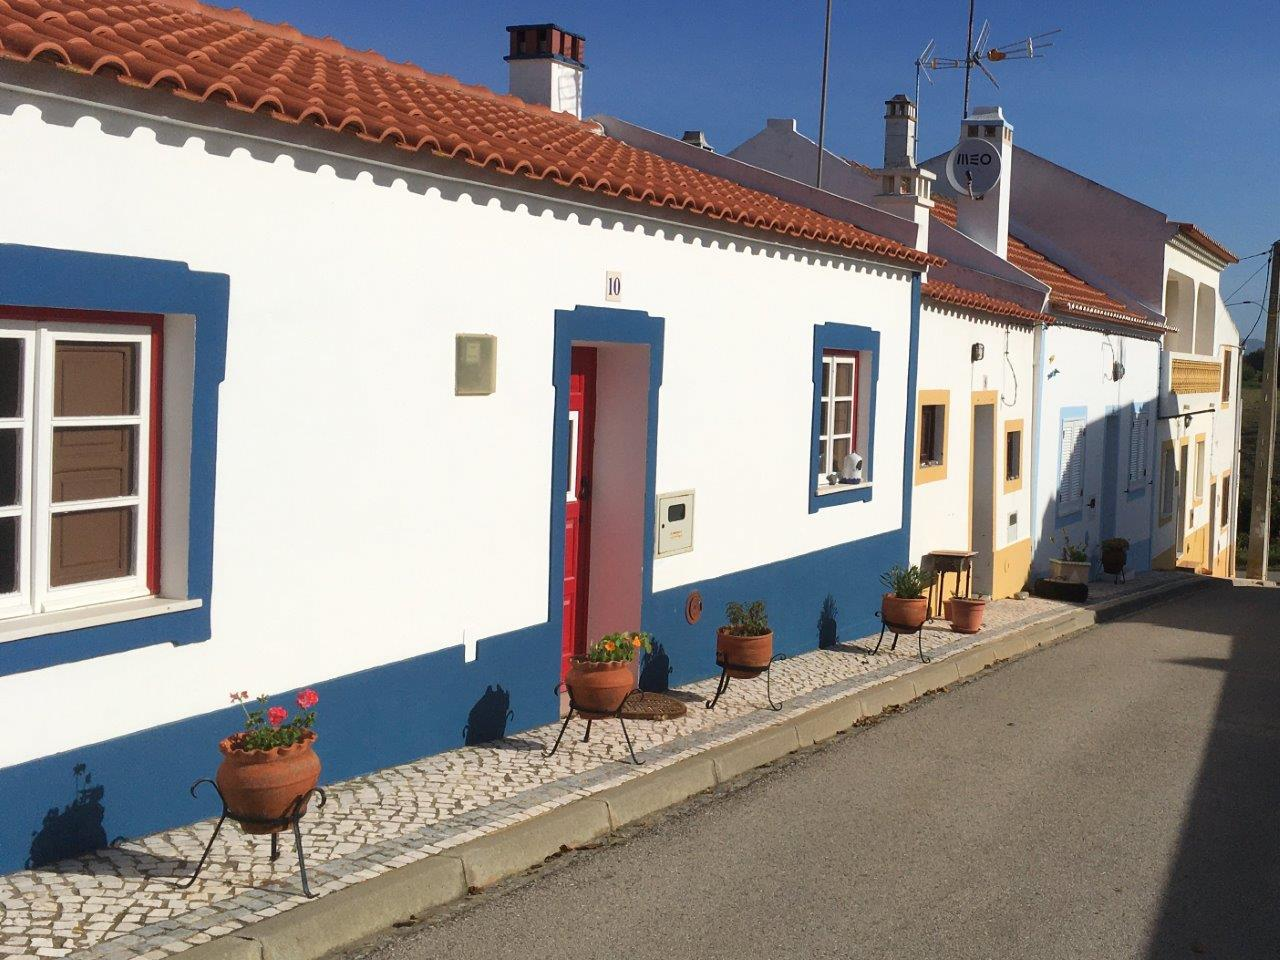 White buildings with blue and yellow trim in traditional Almograve Portugal